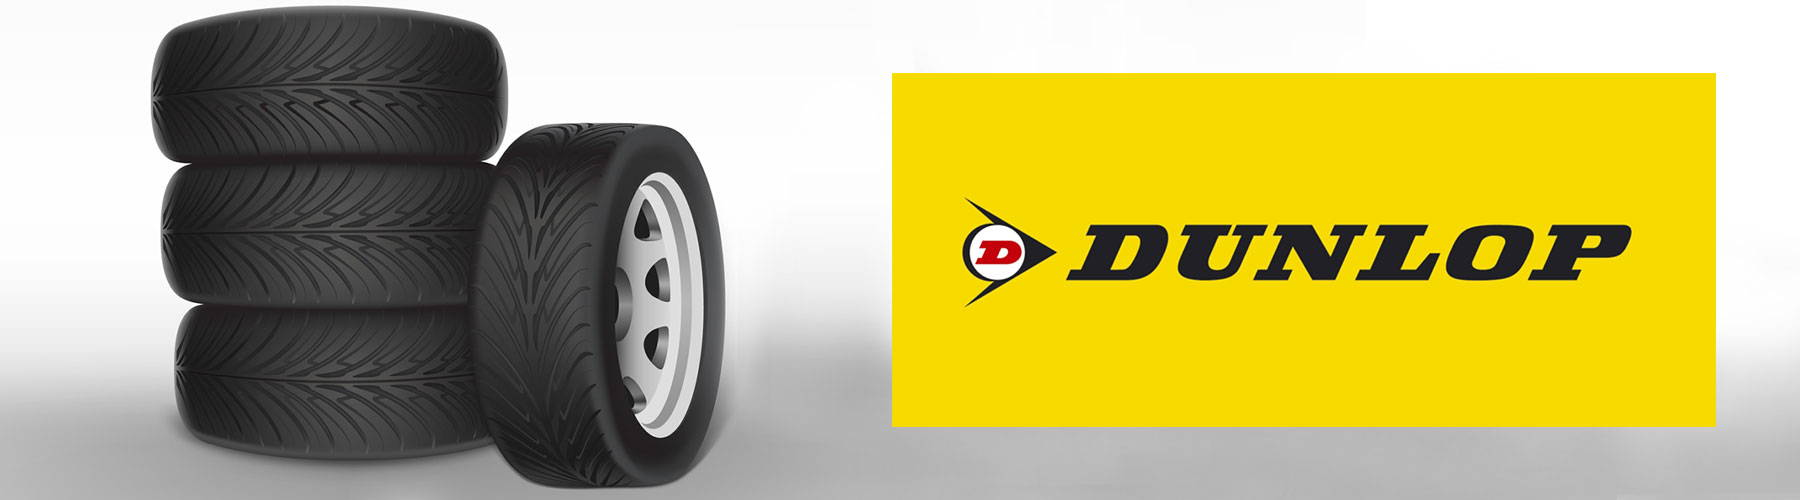 Dunlop logo with tyres image